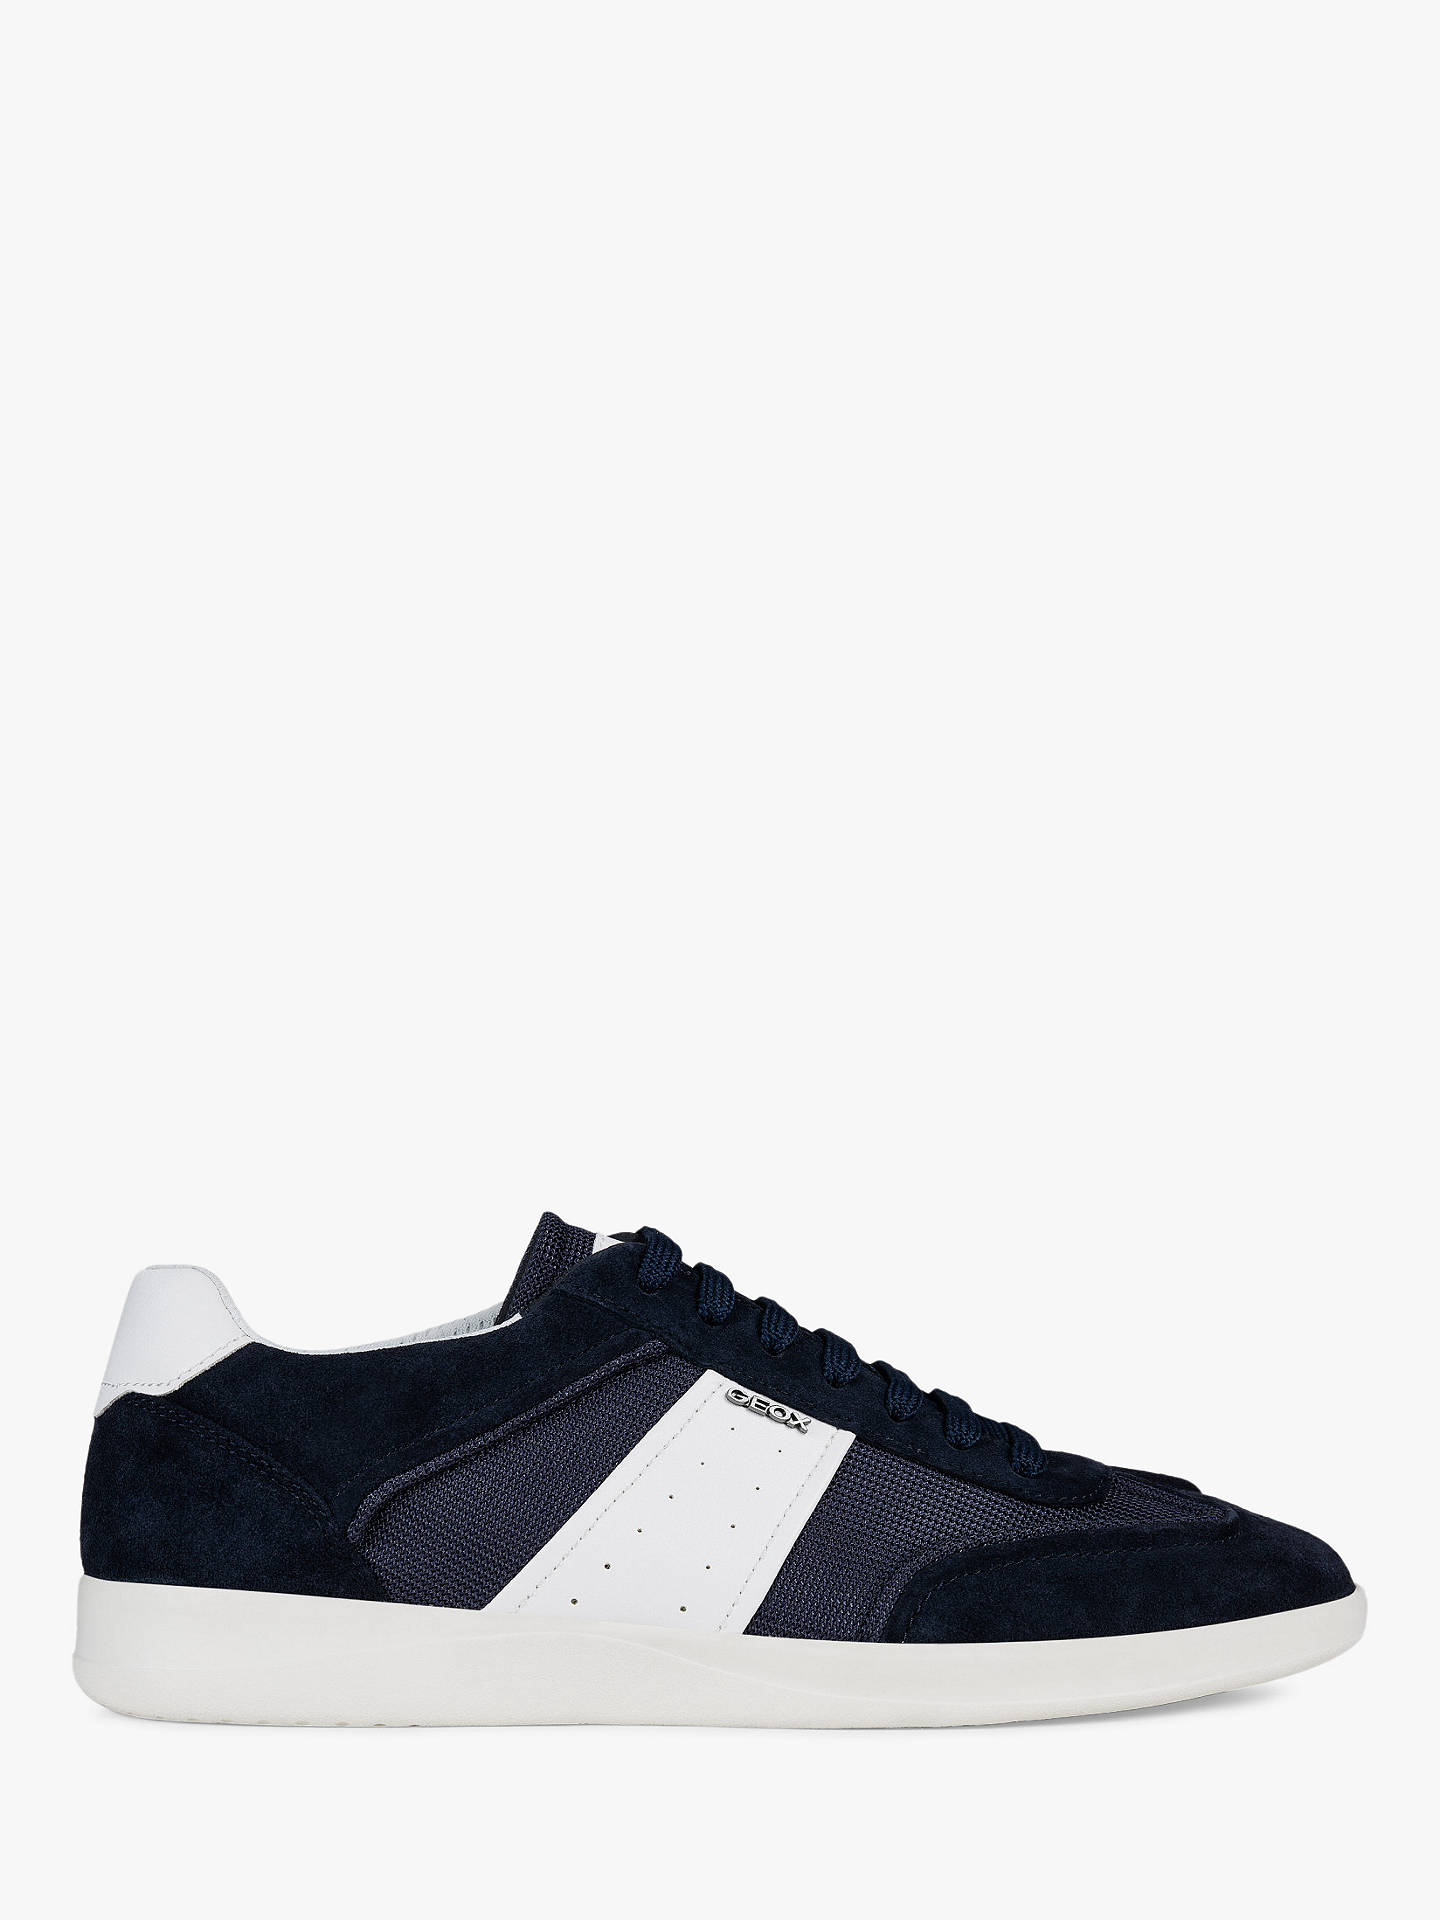 a3b8ce6c2b0d Geox Kennet Textile Detail Trainers at John Lewis   Partners